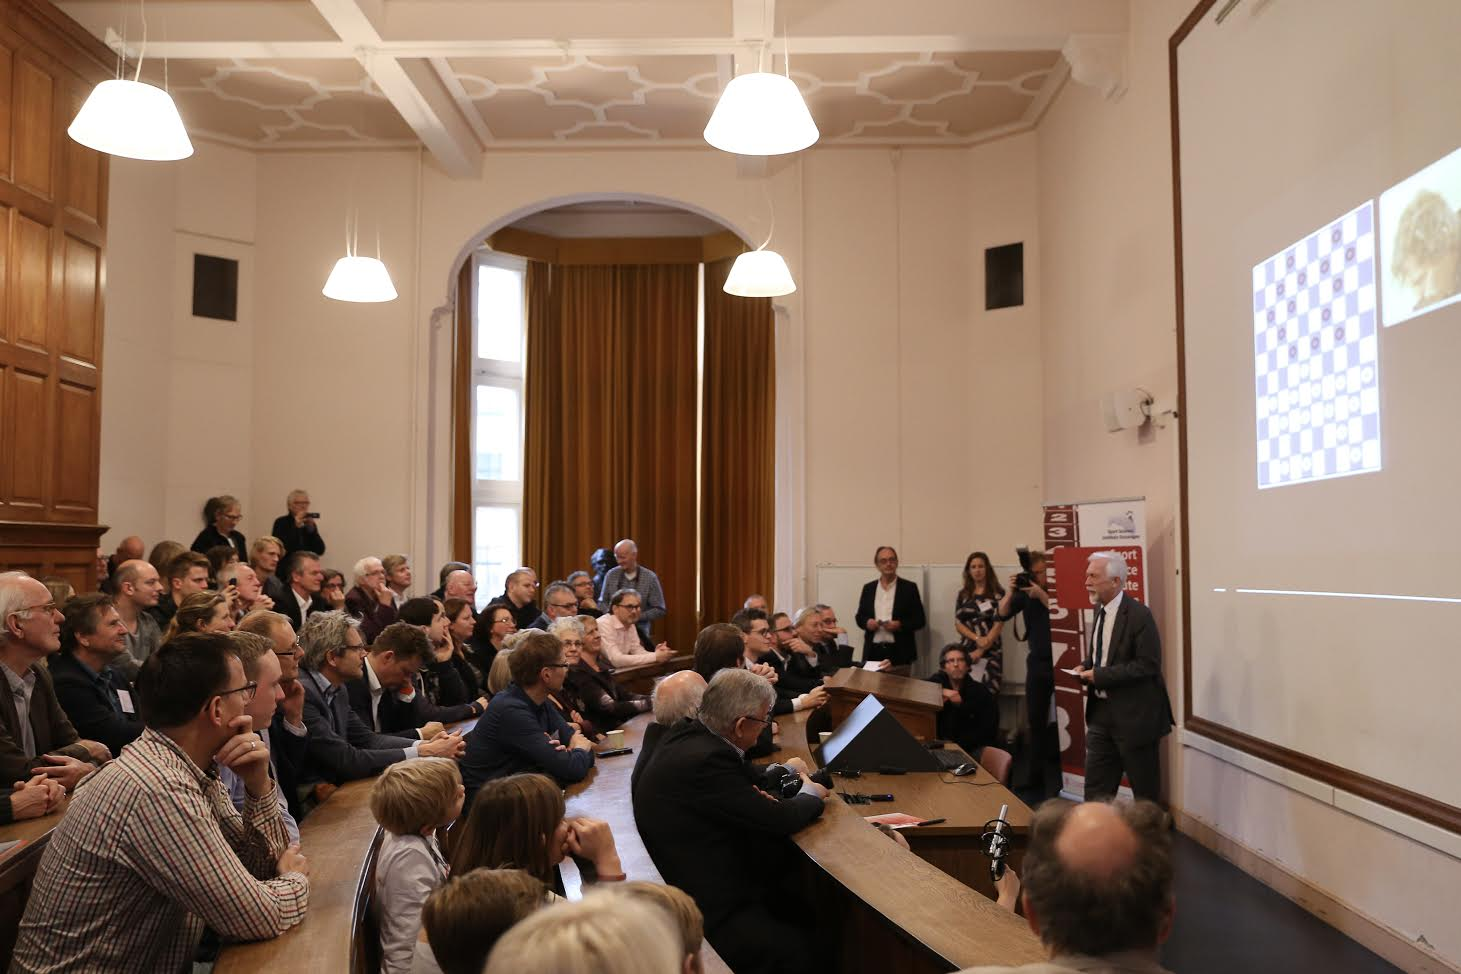 Opening of the symposium in the Academy building